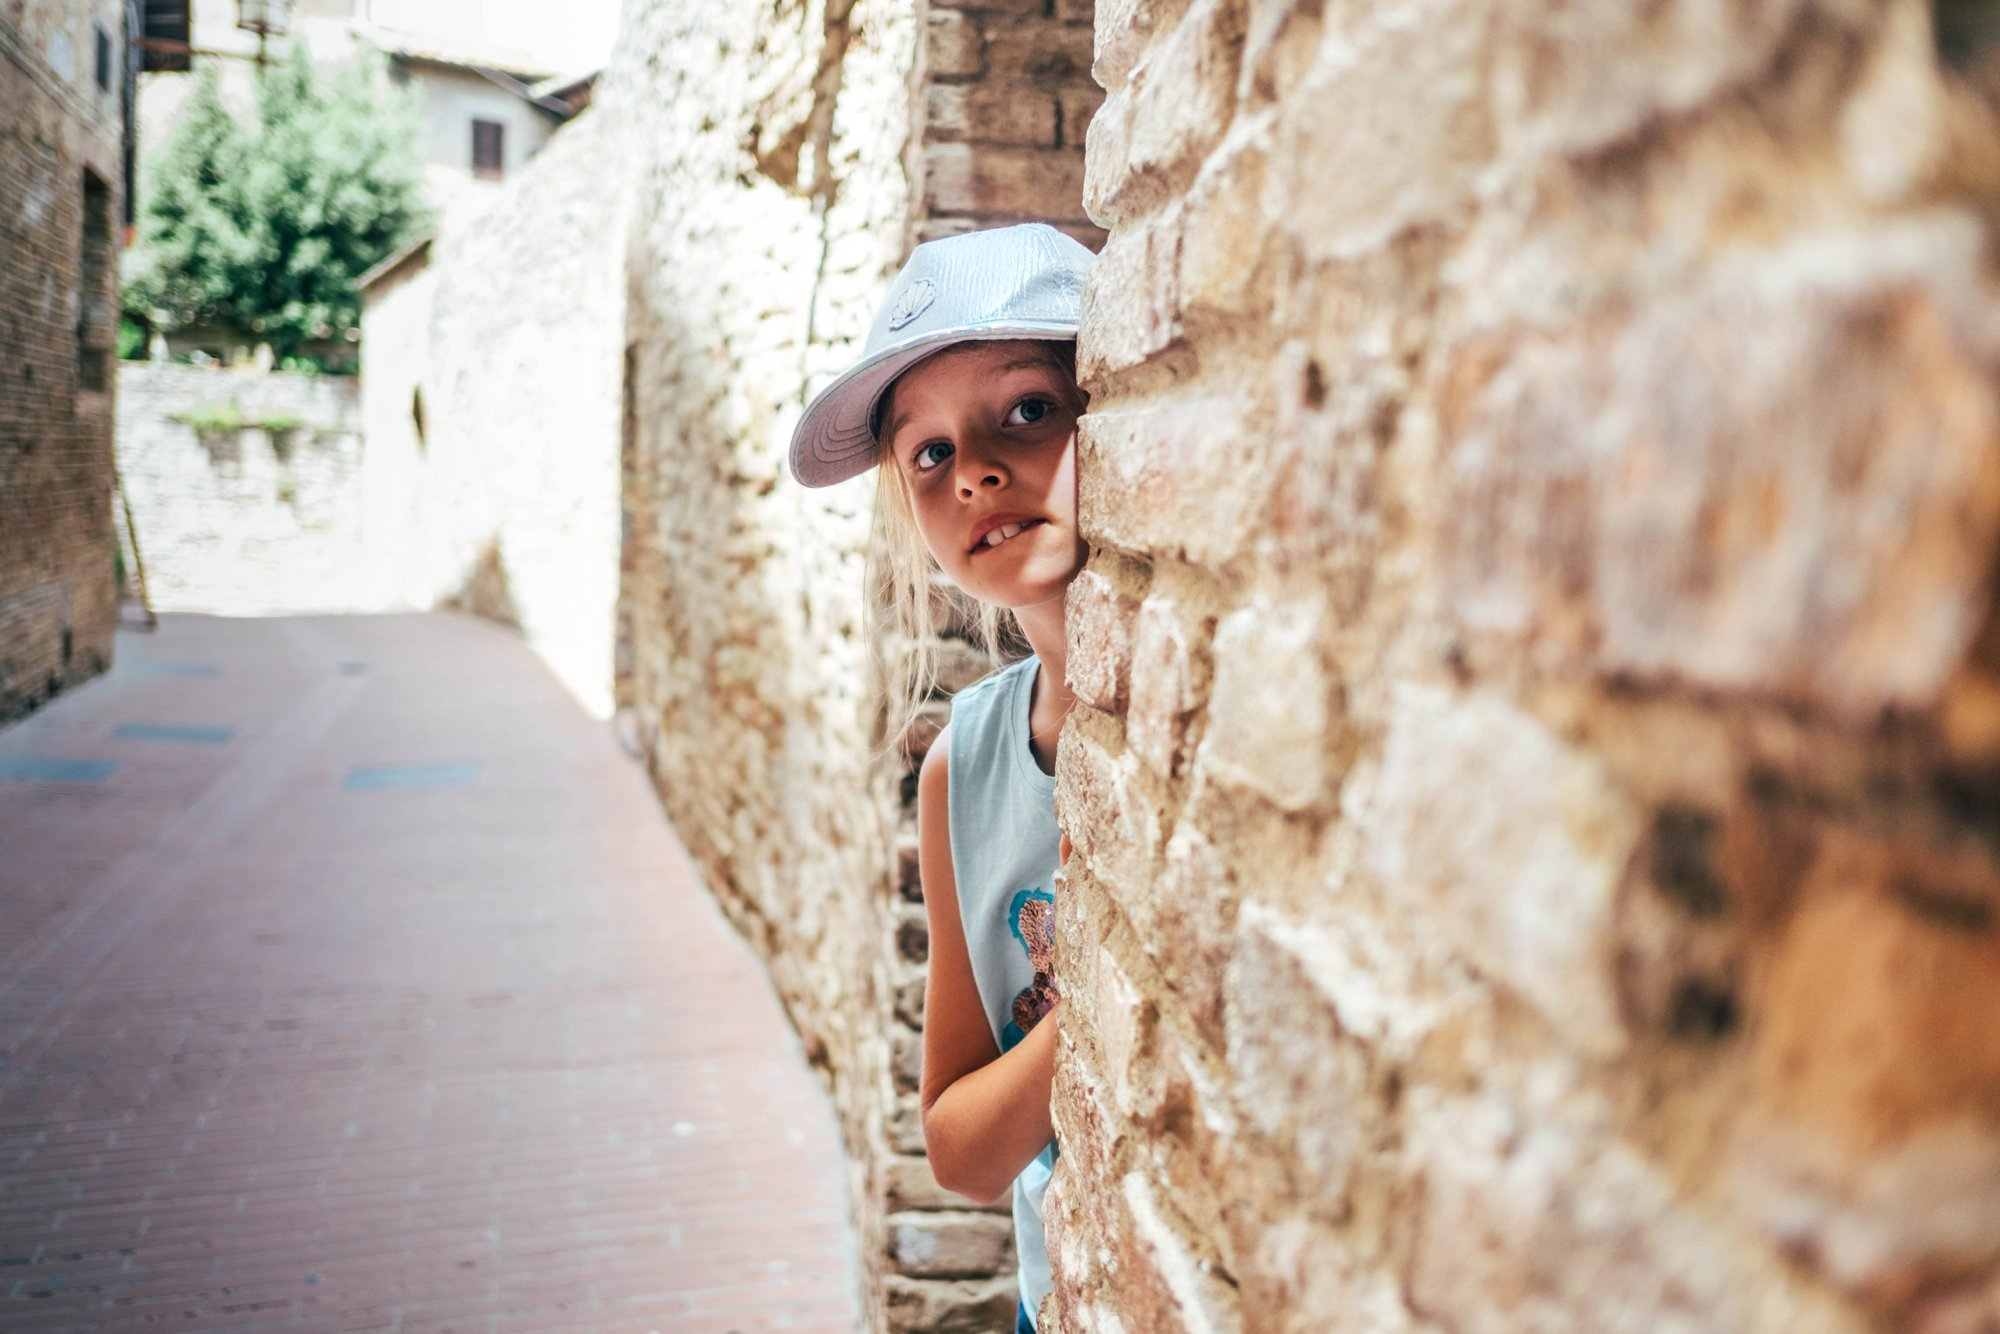 Little girl in alleyway St Gimignano Tuscany Essex Documentary Travel Wedding Photographer